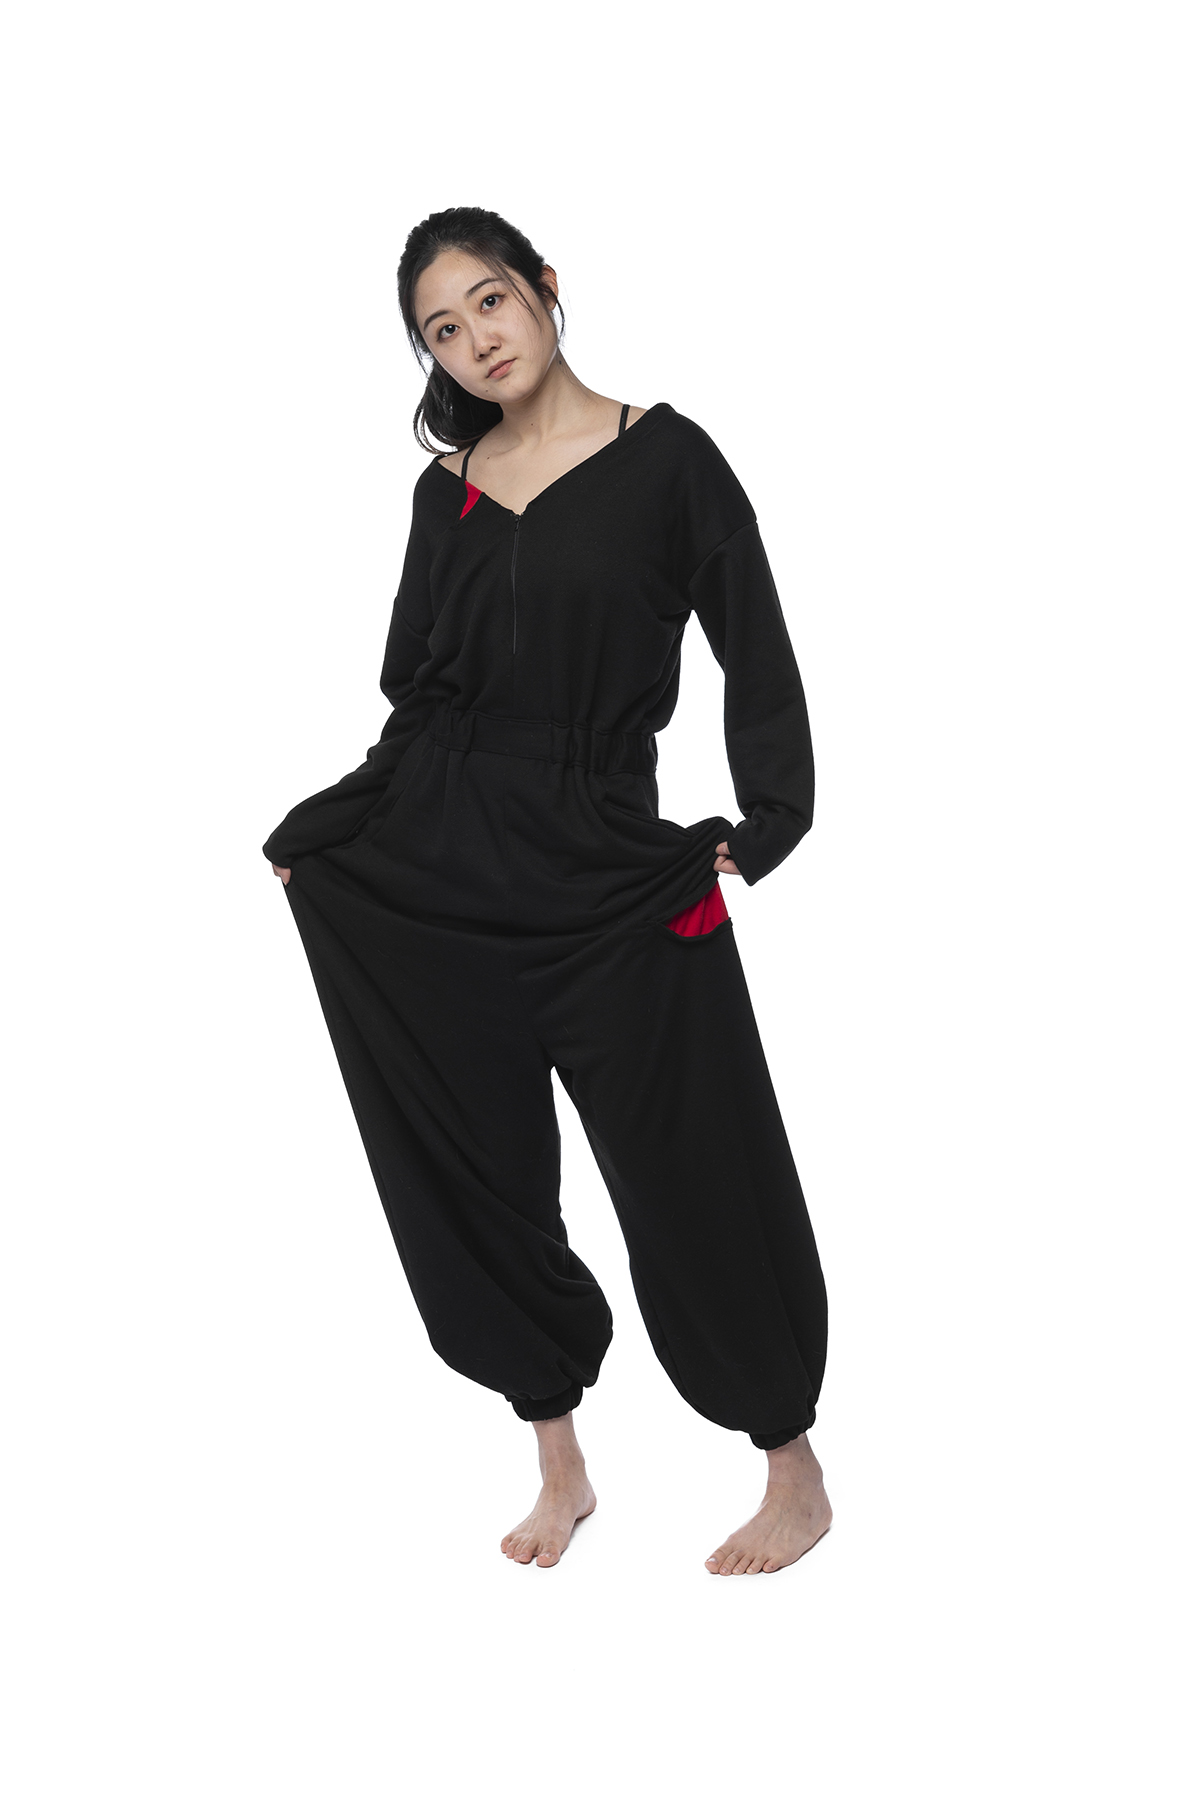 A black and red sweat suit design.